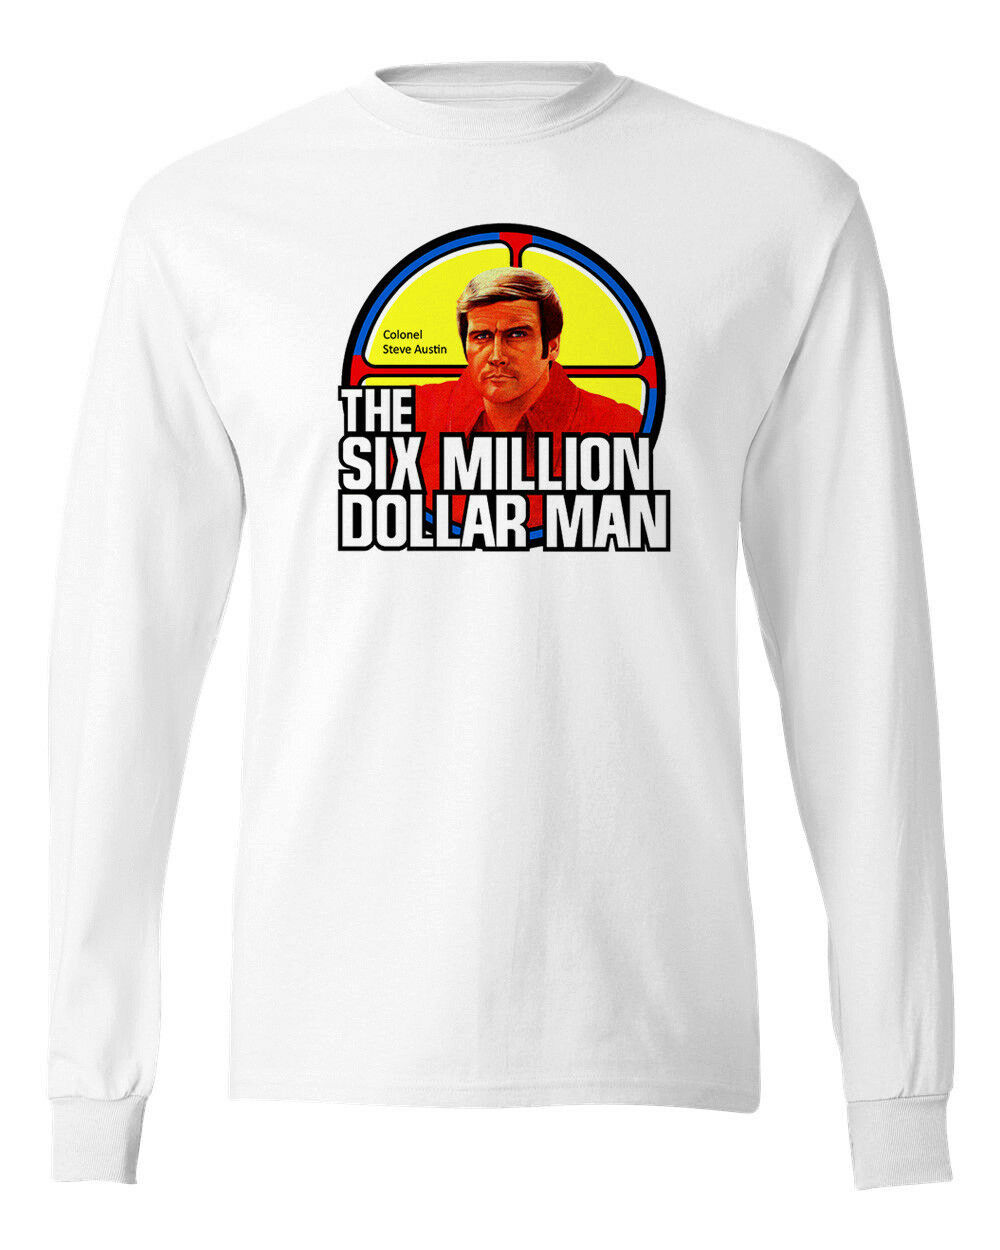 This Six Million Dollar Man T shirt L/S Bionic Man retro 1970s Long Sleeve tee